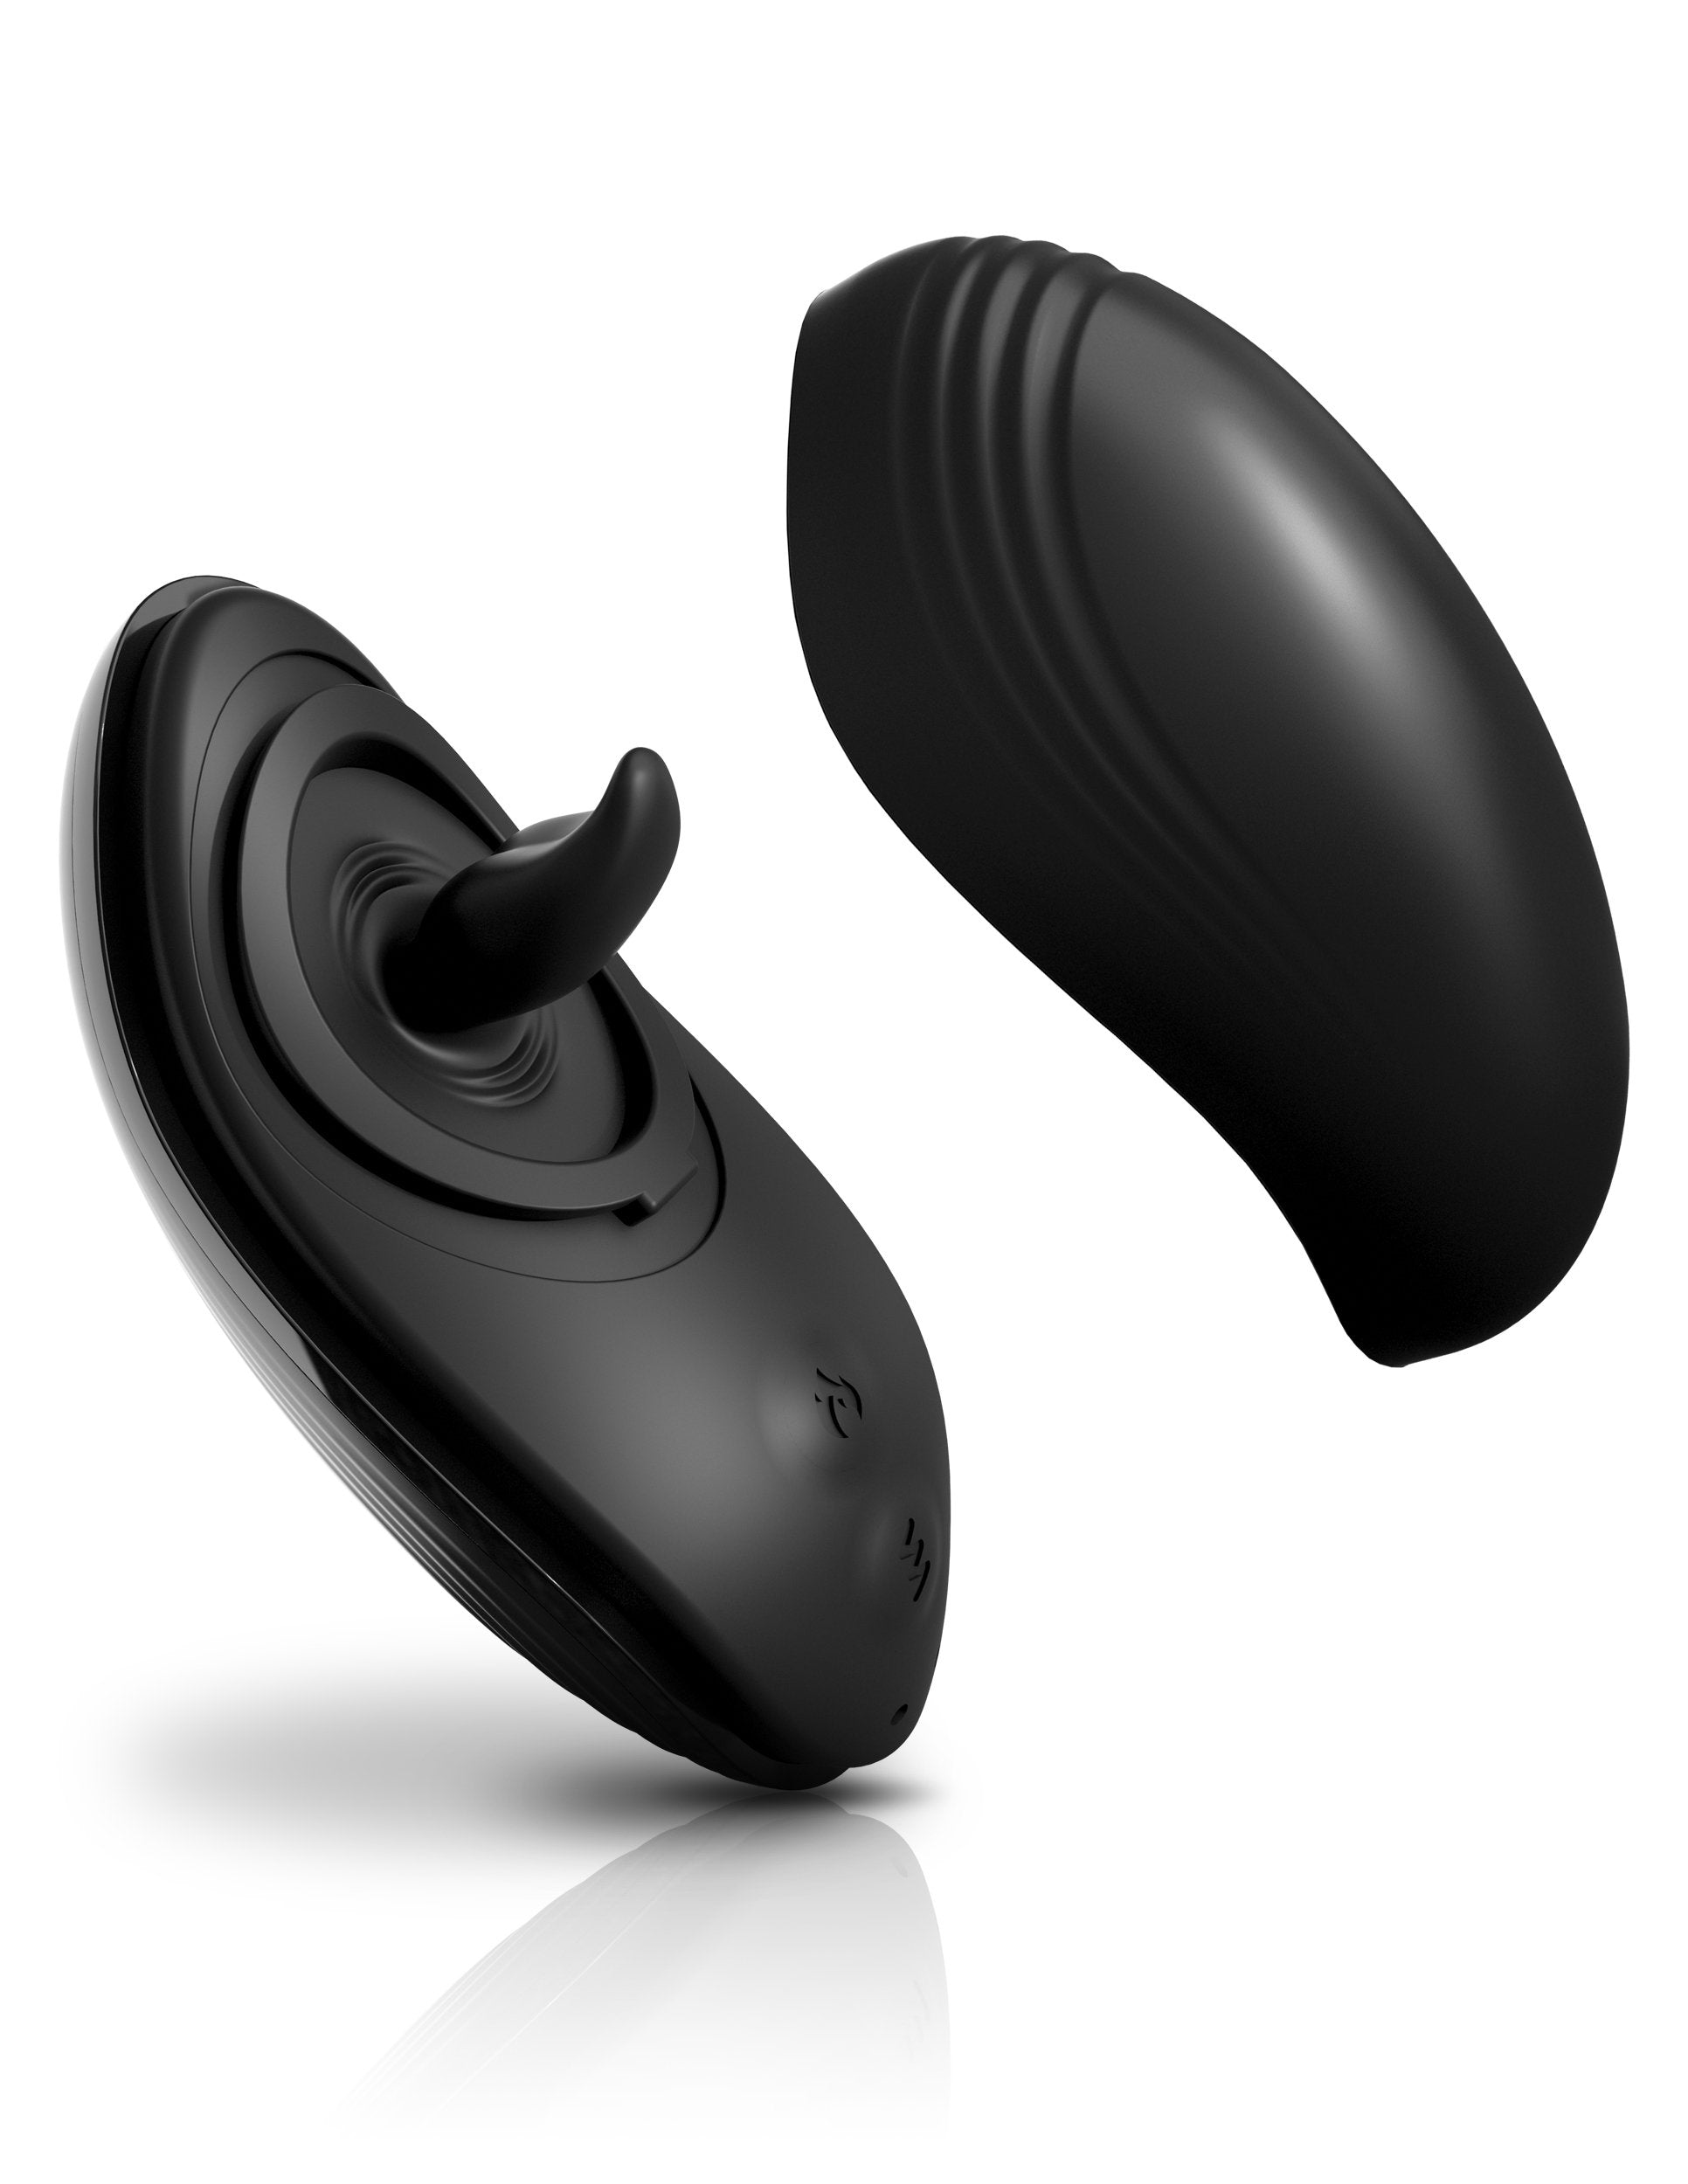 Sir Richard's Control Silicone Rim Joy Rimming Tongue Vibrator with the case lid